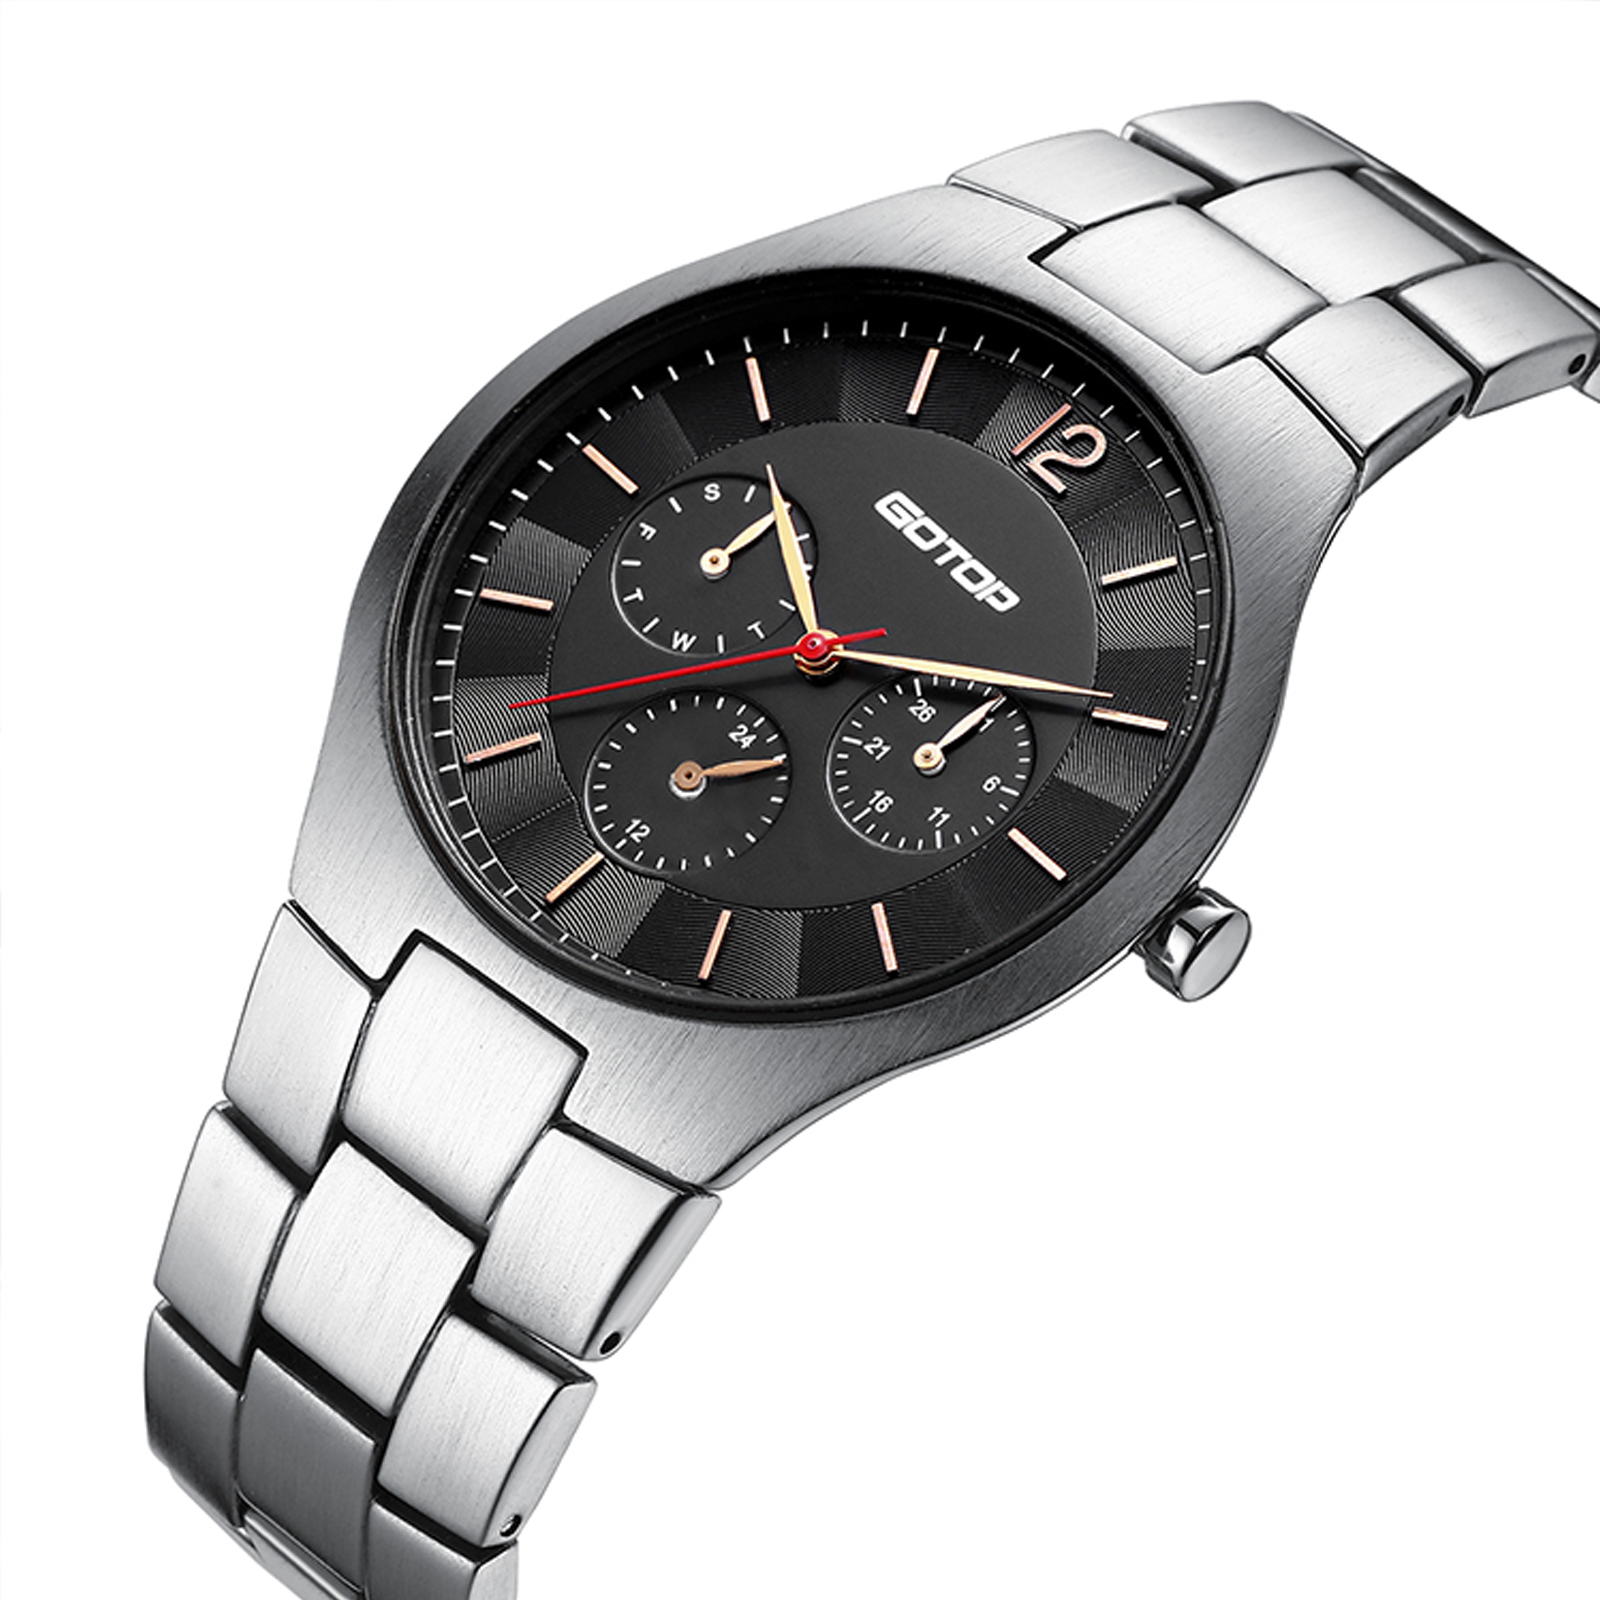 Stainless-Steel Men's Watch With Brushed Finish And Built-In Metal Band